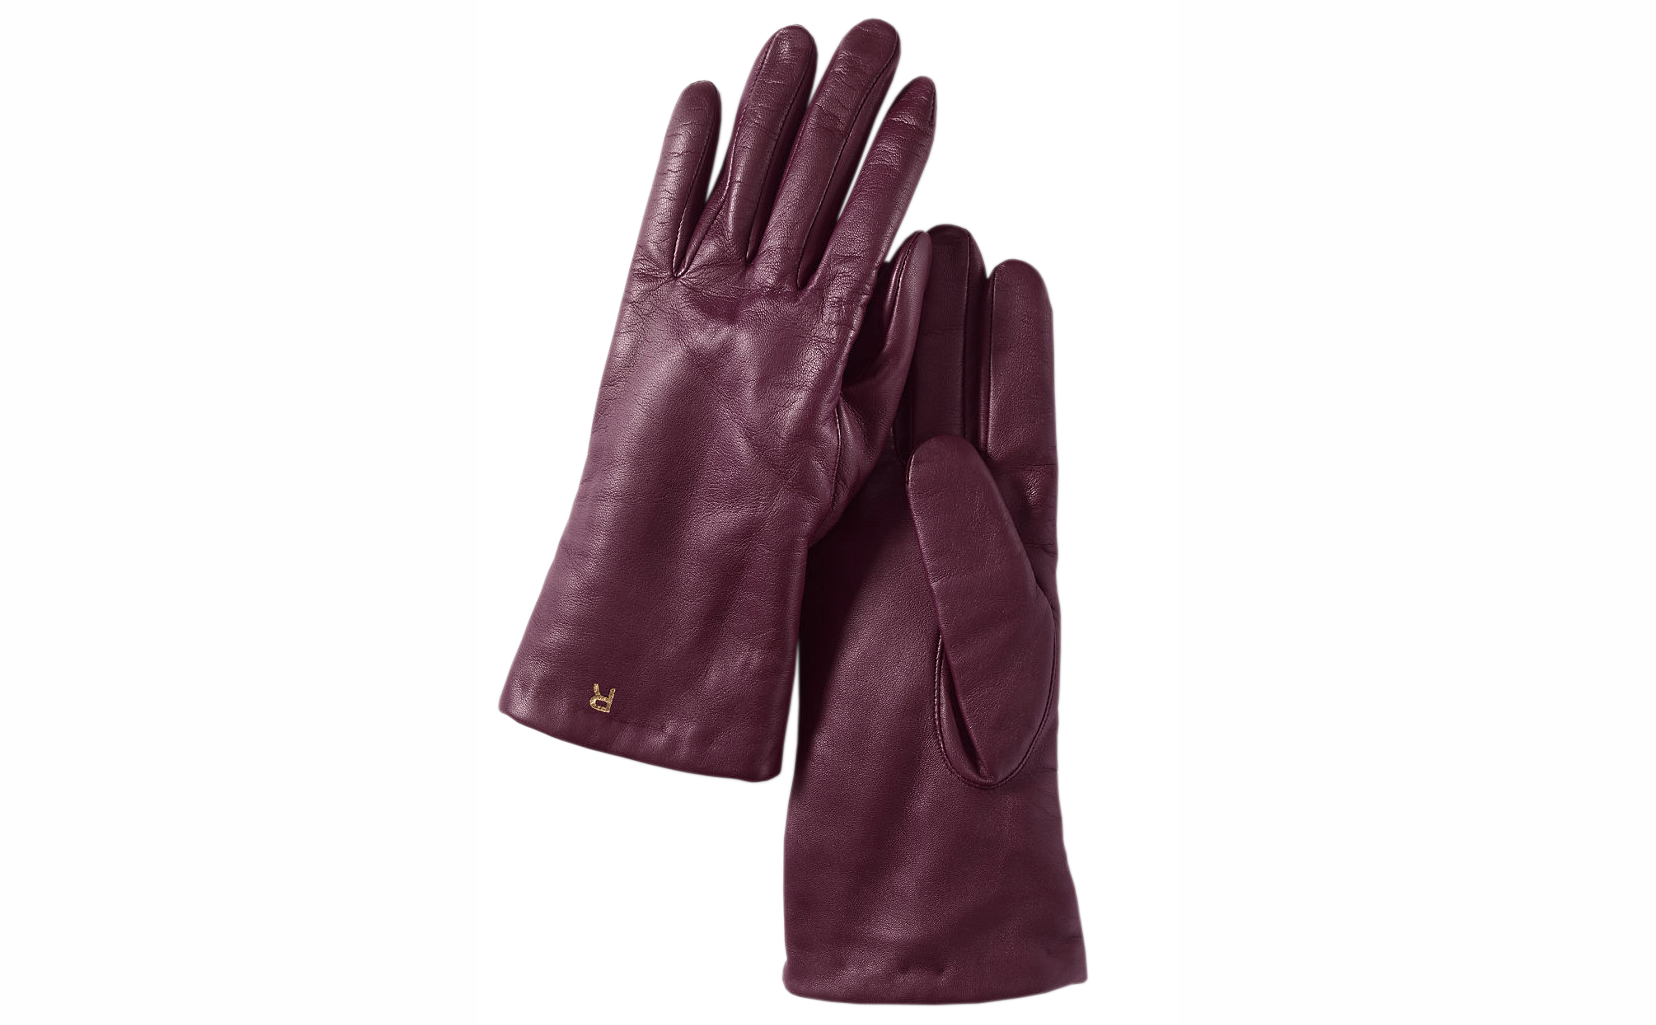 Land's End Women's Luxe Leather Gloves